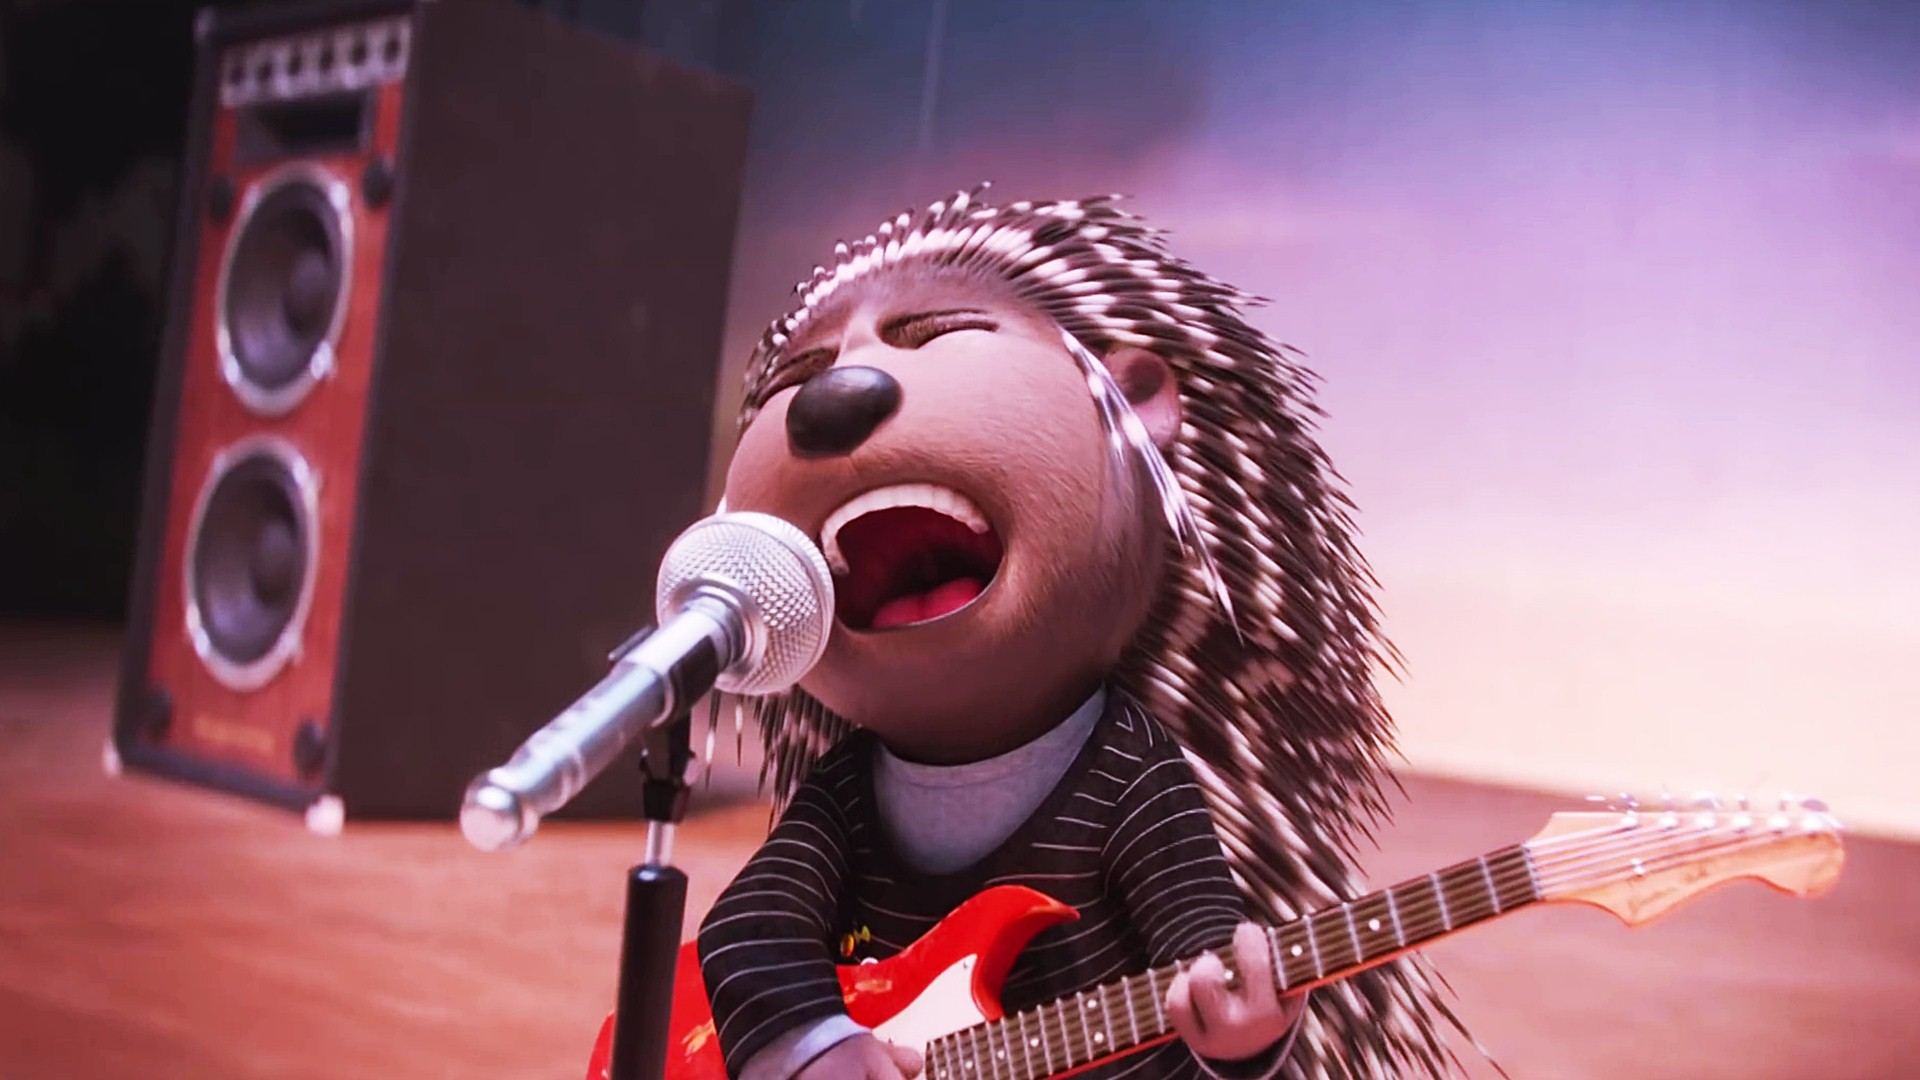 Ash-Crested-Porcupine-In-Sing-03160